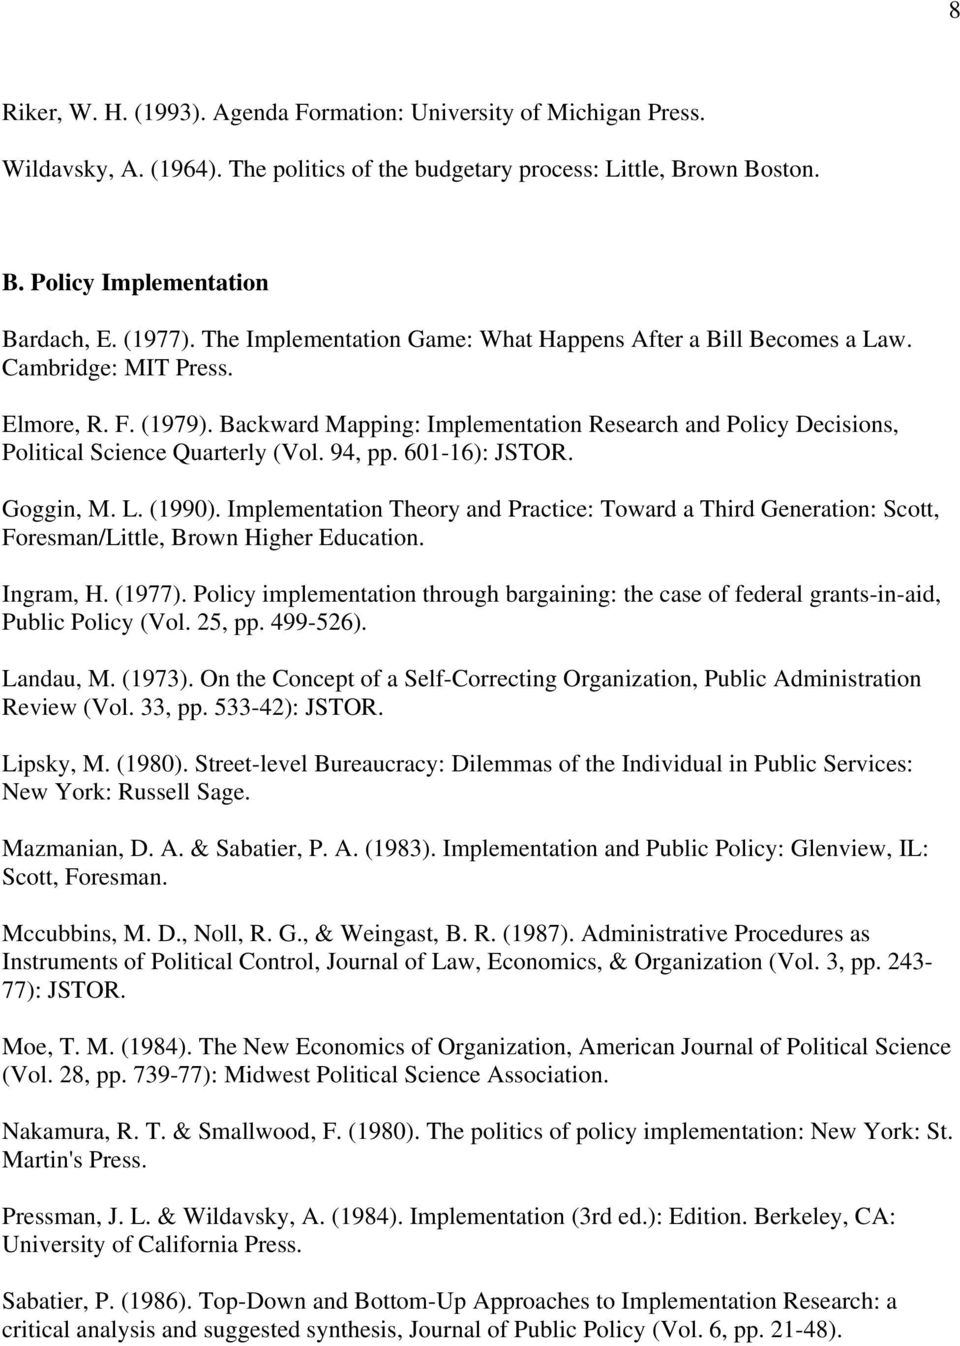 Backward Mapping: Implementation Research and Policy Decisions, Political Science Quarterly (Vol. 94, pp. 601-16): JSTOR. Goggin, M. L. (1990).